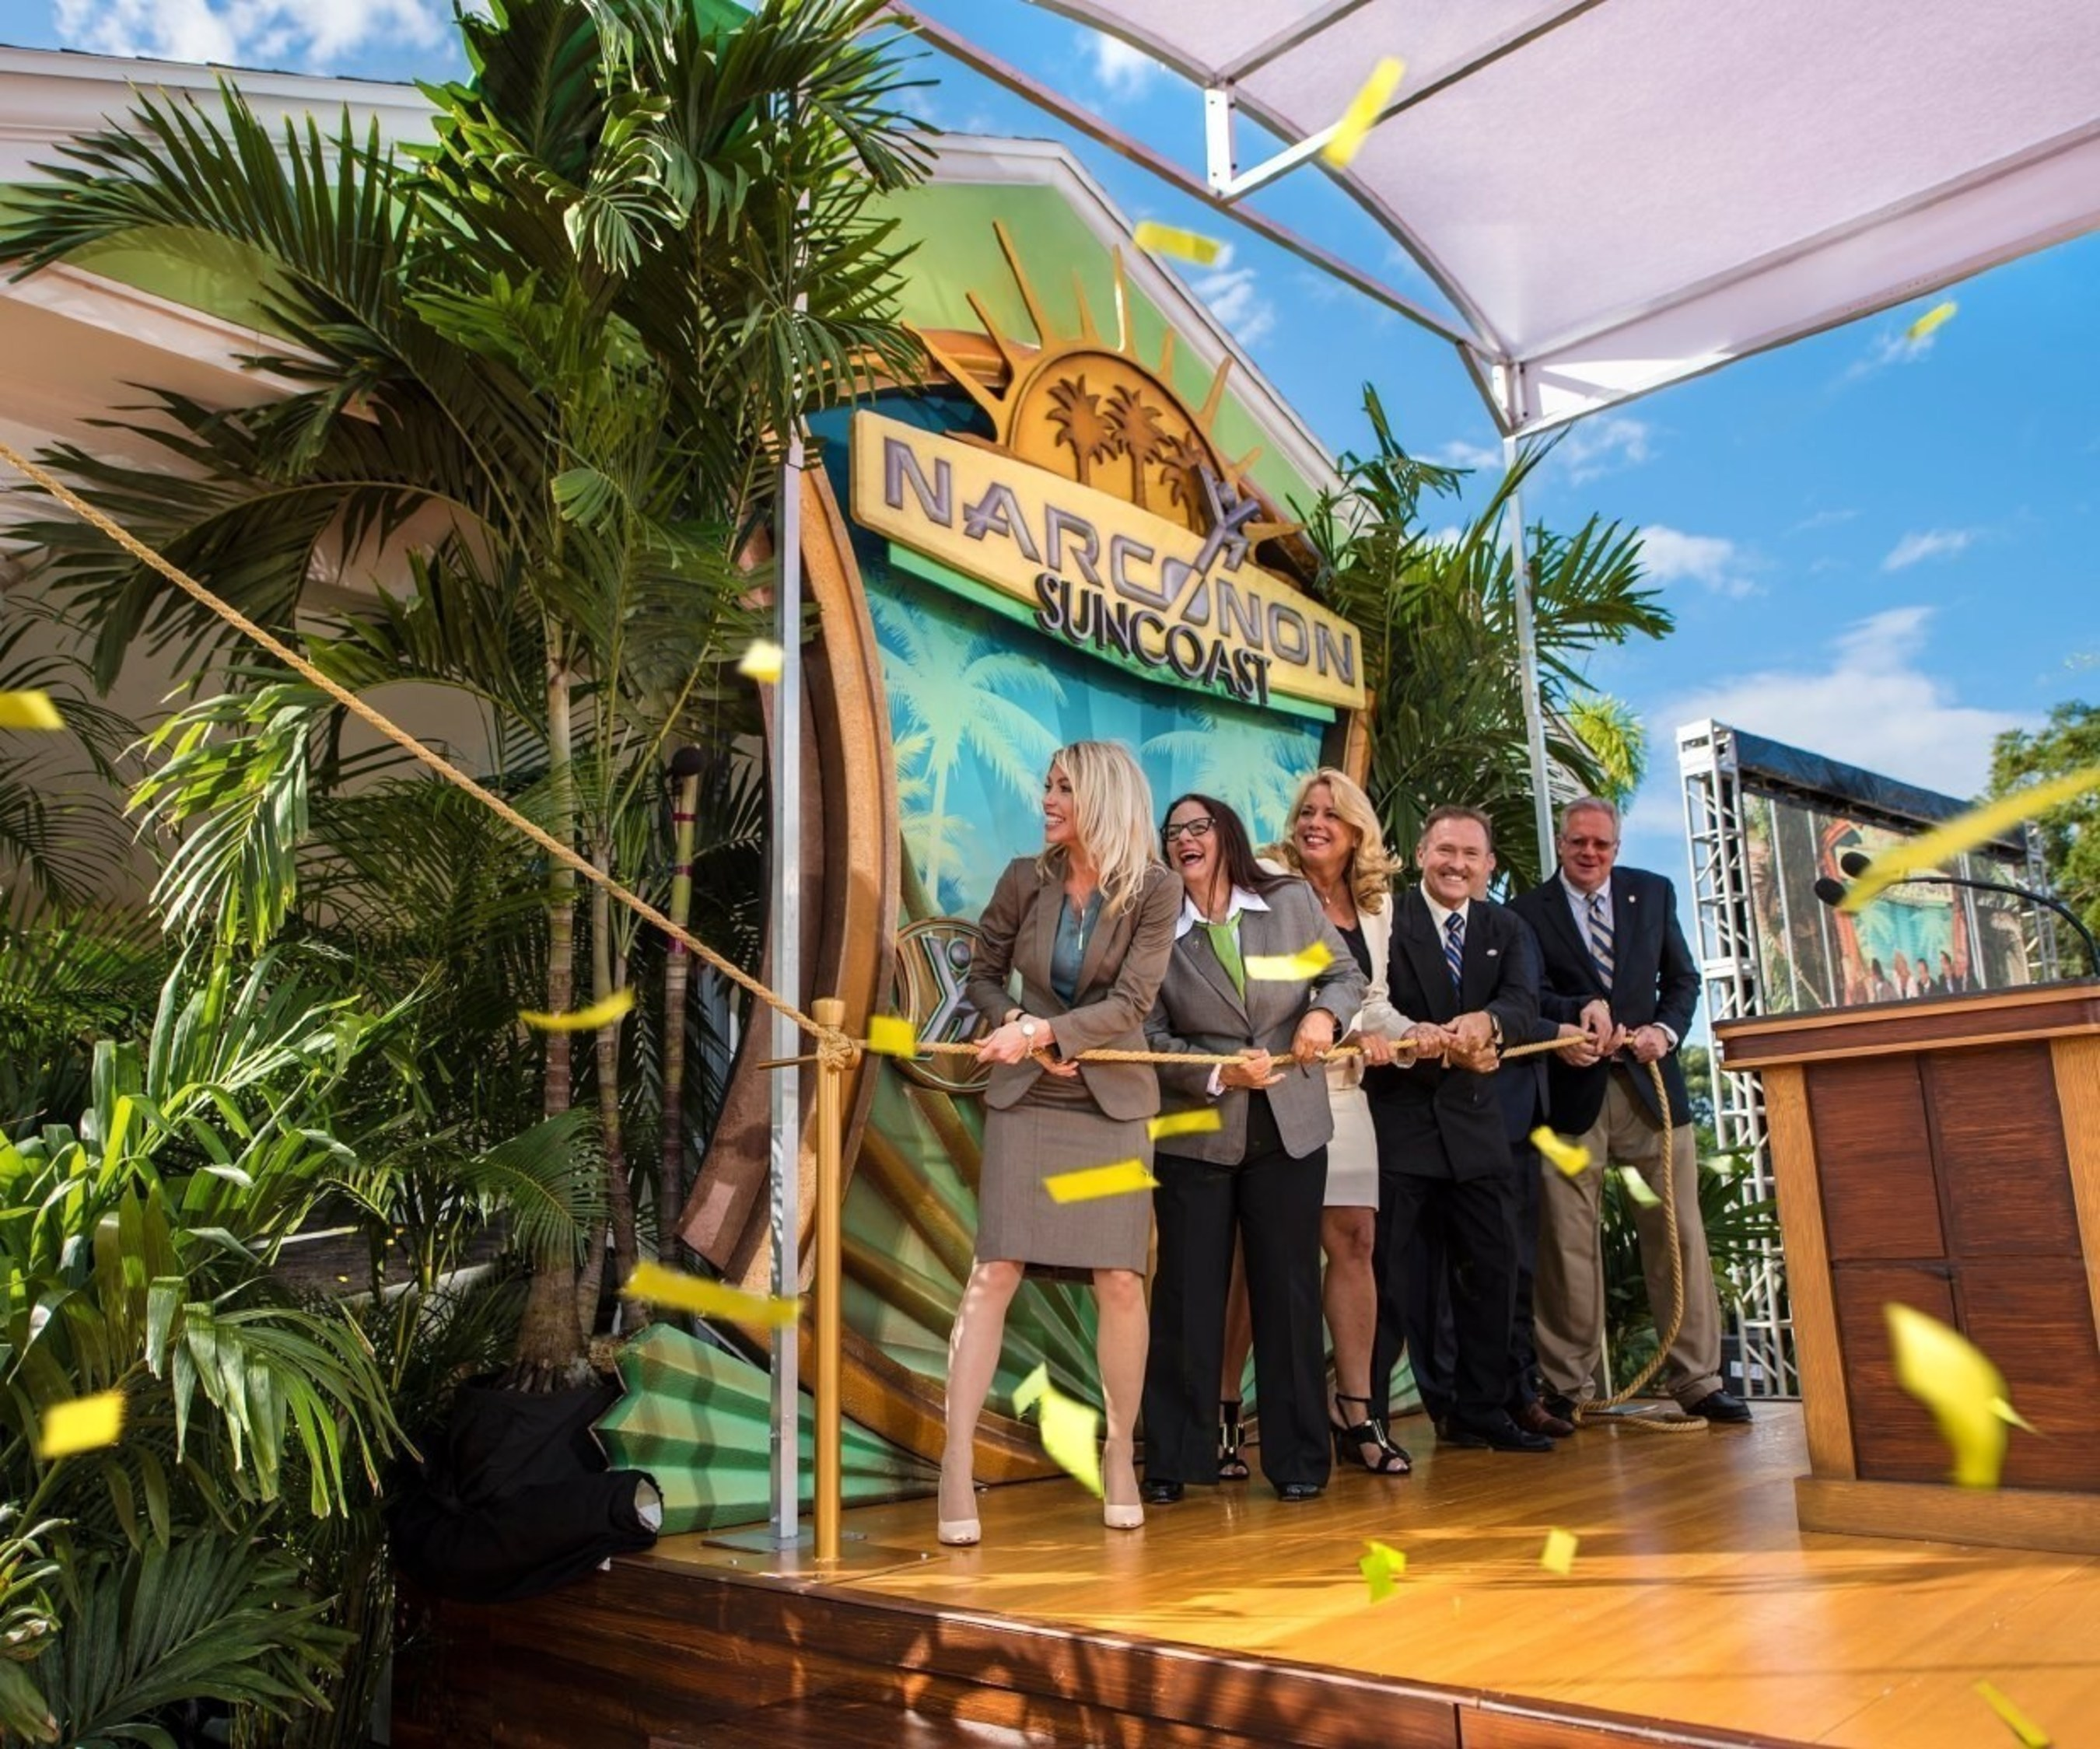 Narconon Suncoast Dedication Heralds Dynamic New Age for Drug Rehab in Florida